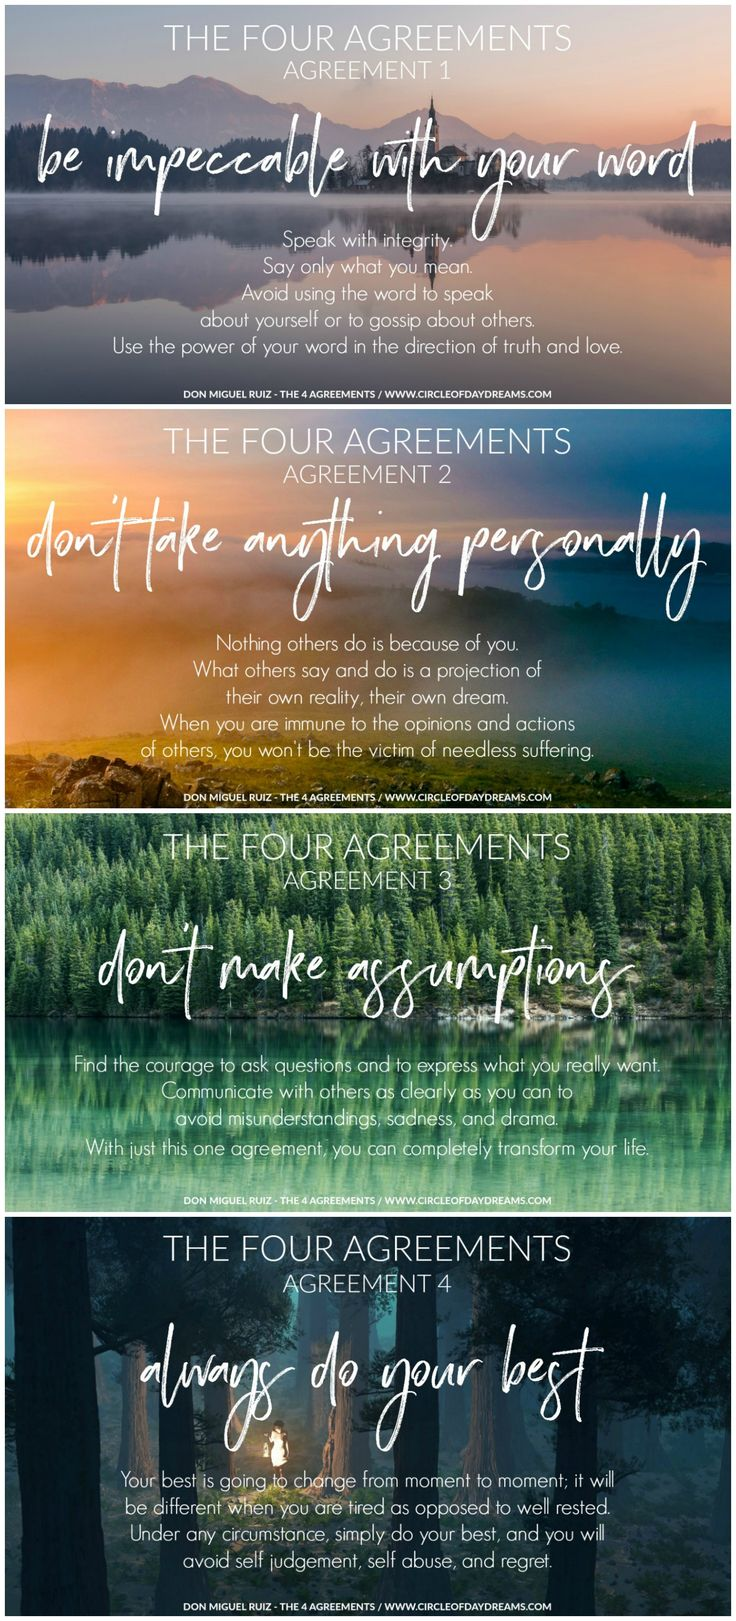 The Four Agreements by Don Miguel Ruiz. See how I use them on www.circleofdaydreams.com